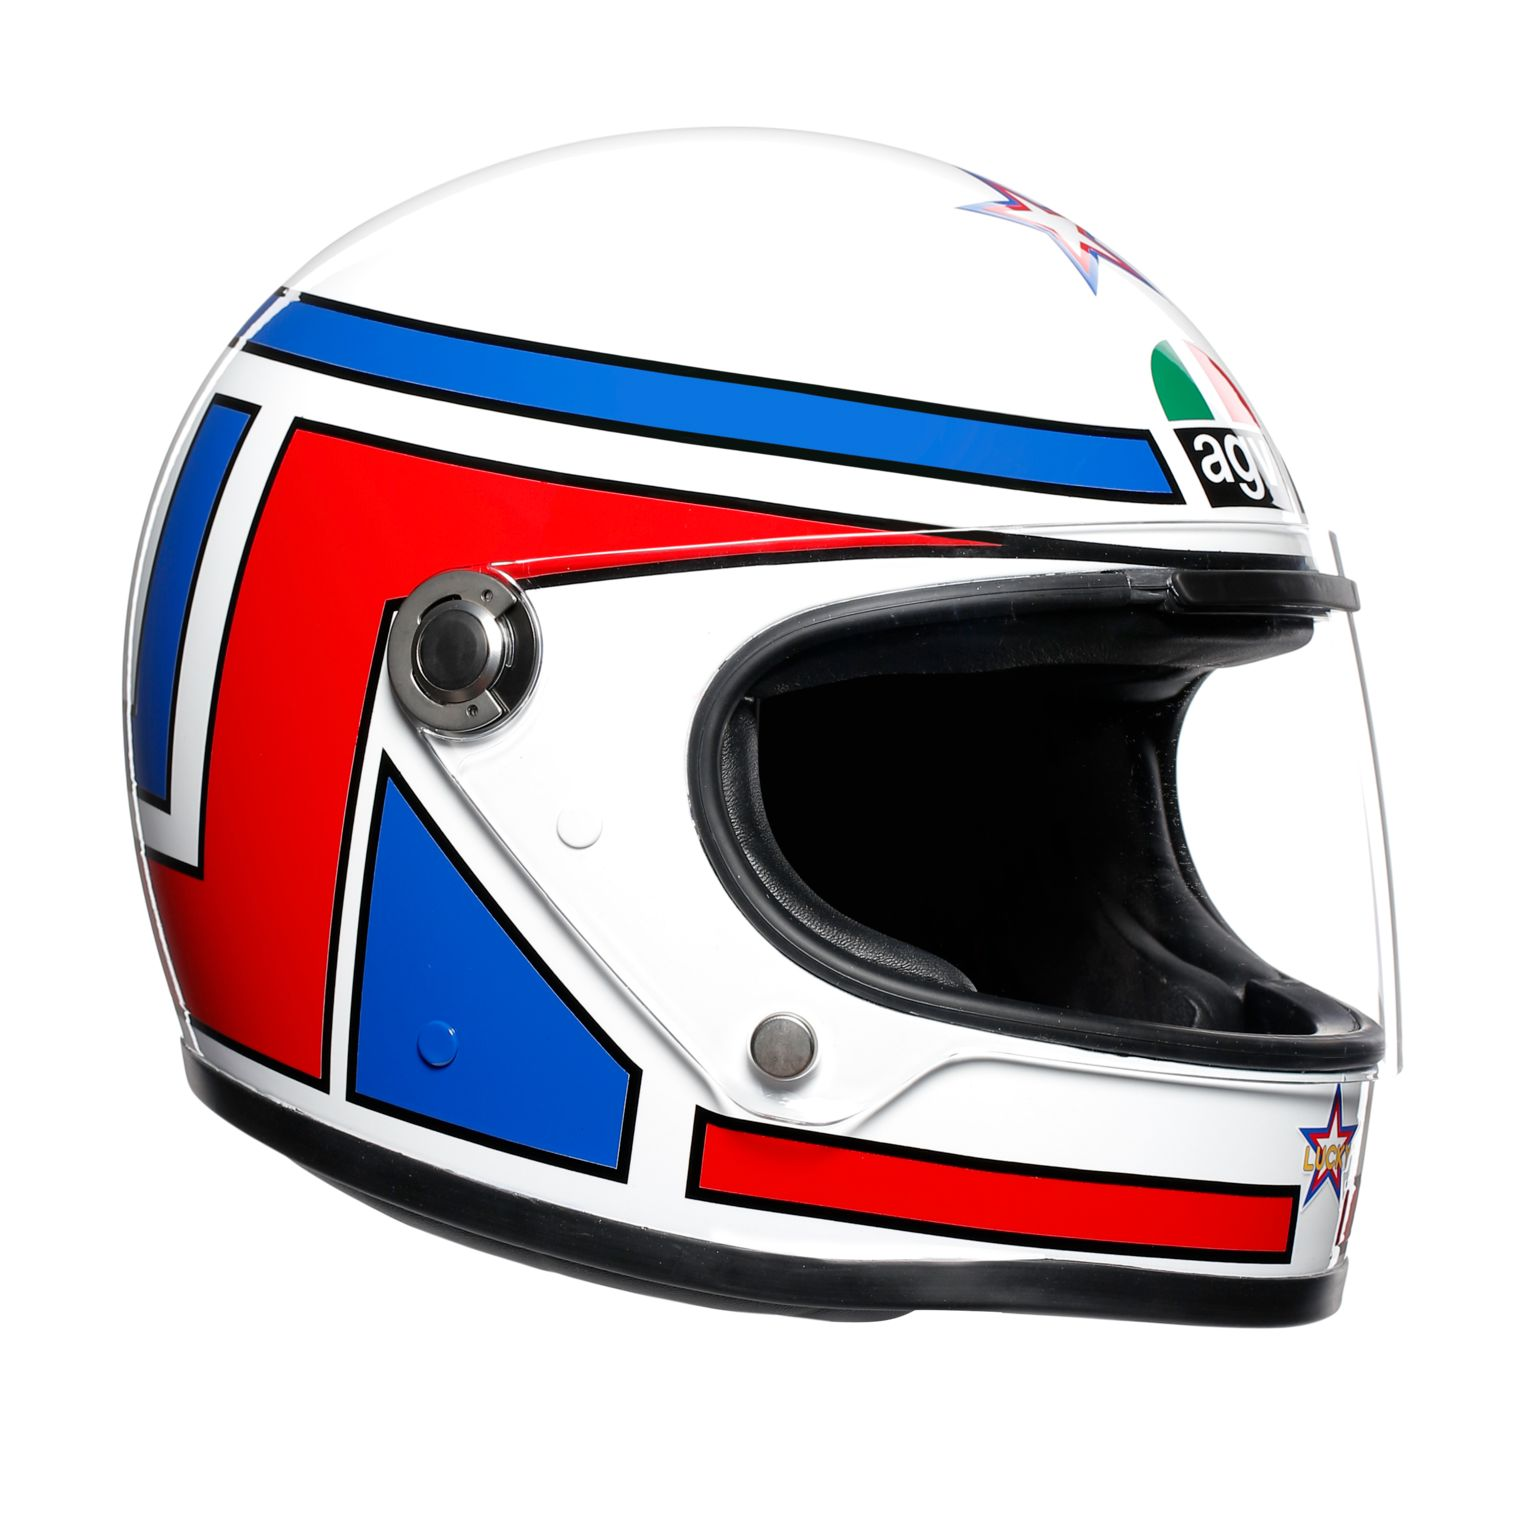 Casco AGV X3000 - LUCKY REPLICA